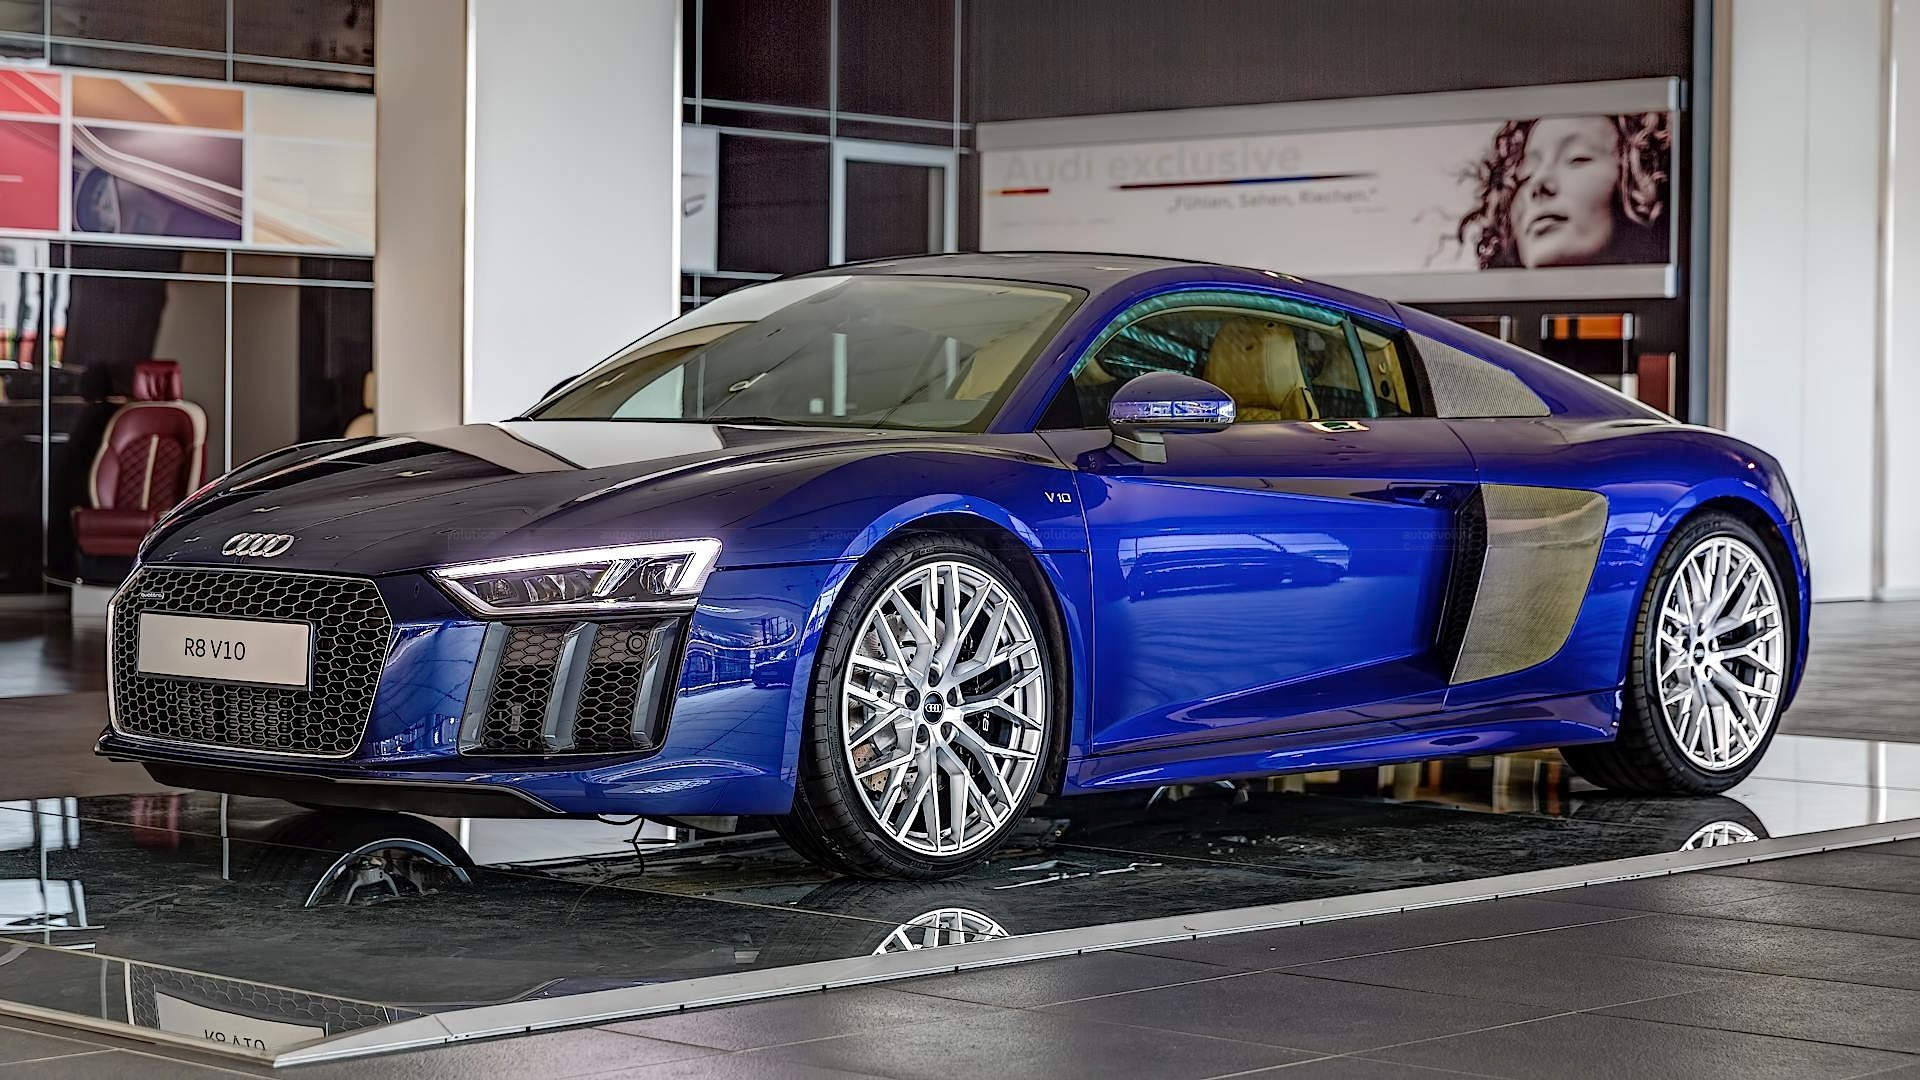 2016 Audi R8 V10 Gets Santorini Blue Paint And Havana Brown Leather